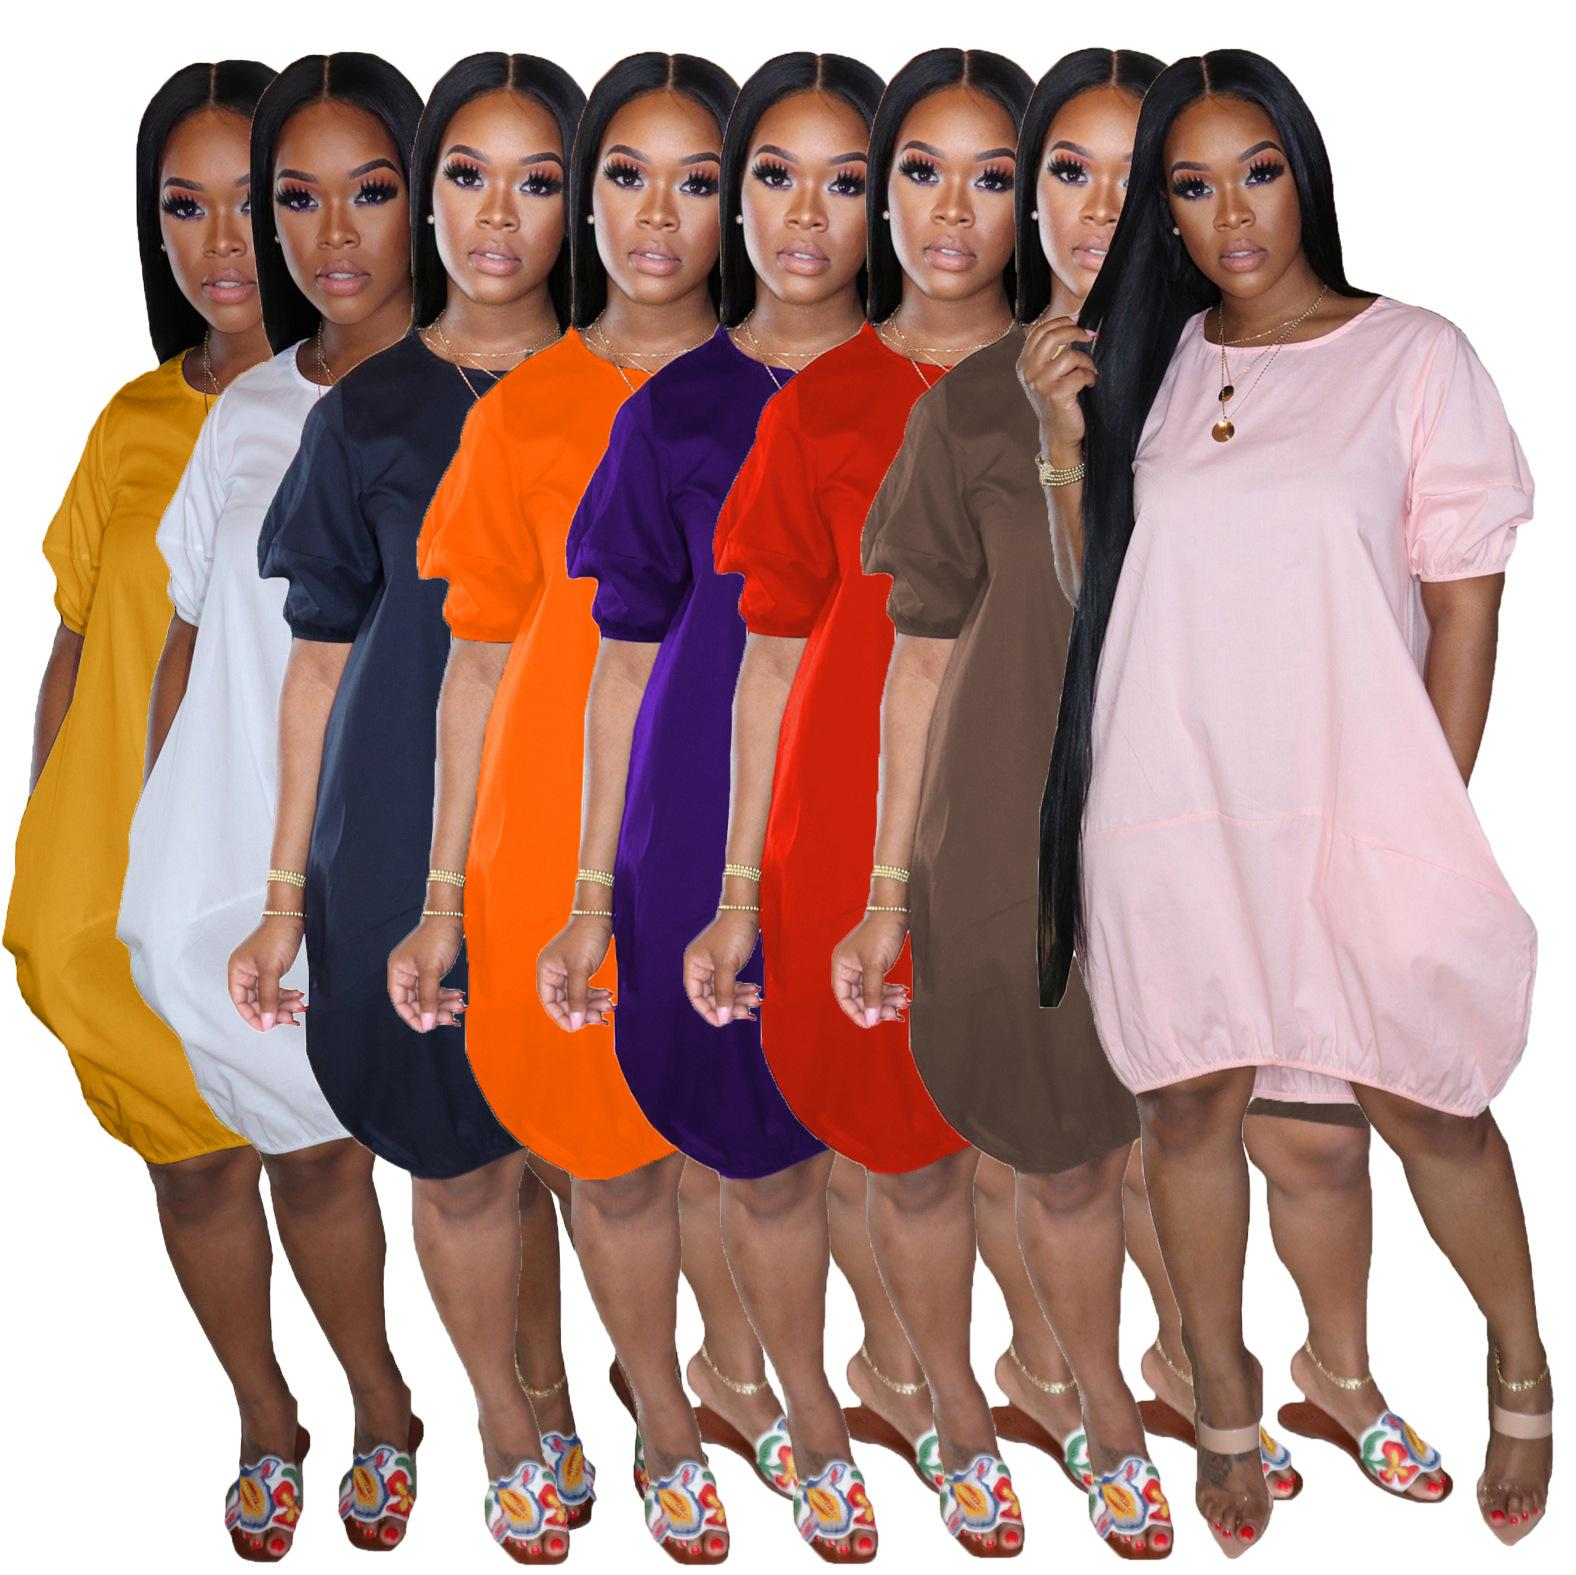 Summer Women Lantern Dresss 8 Colors In Stock 2020 Fashion Short Sleeves Round Neck Loose Short Casual Dress Knee Lengh New Arrivals